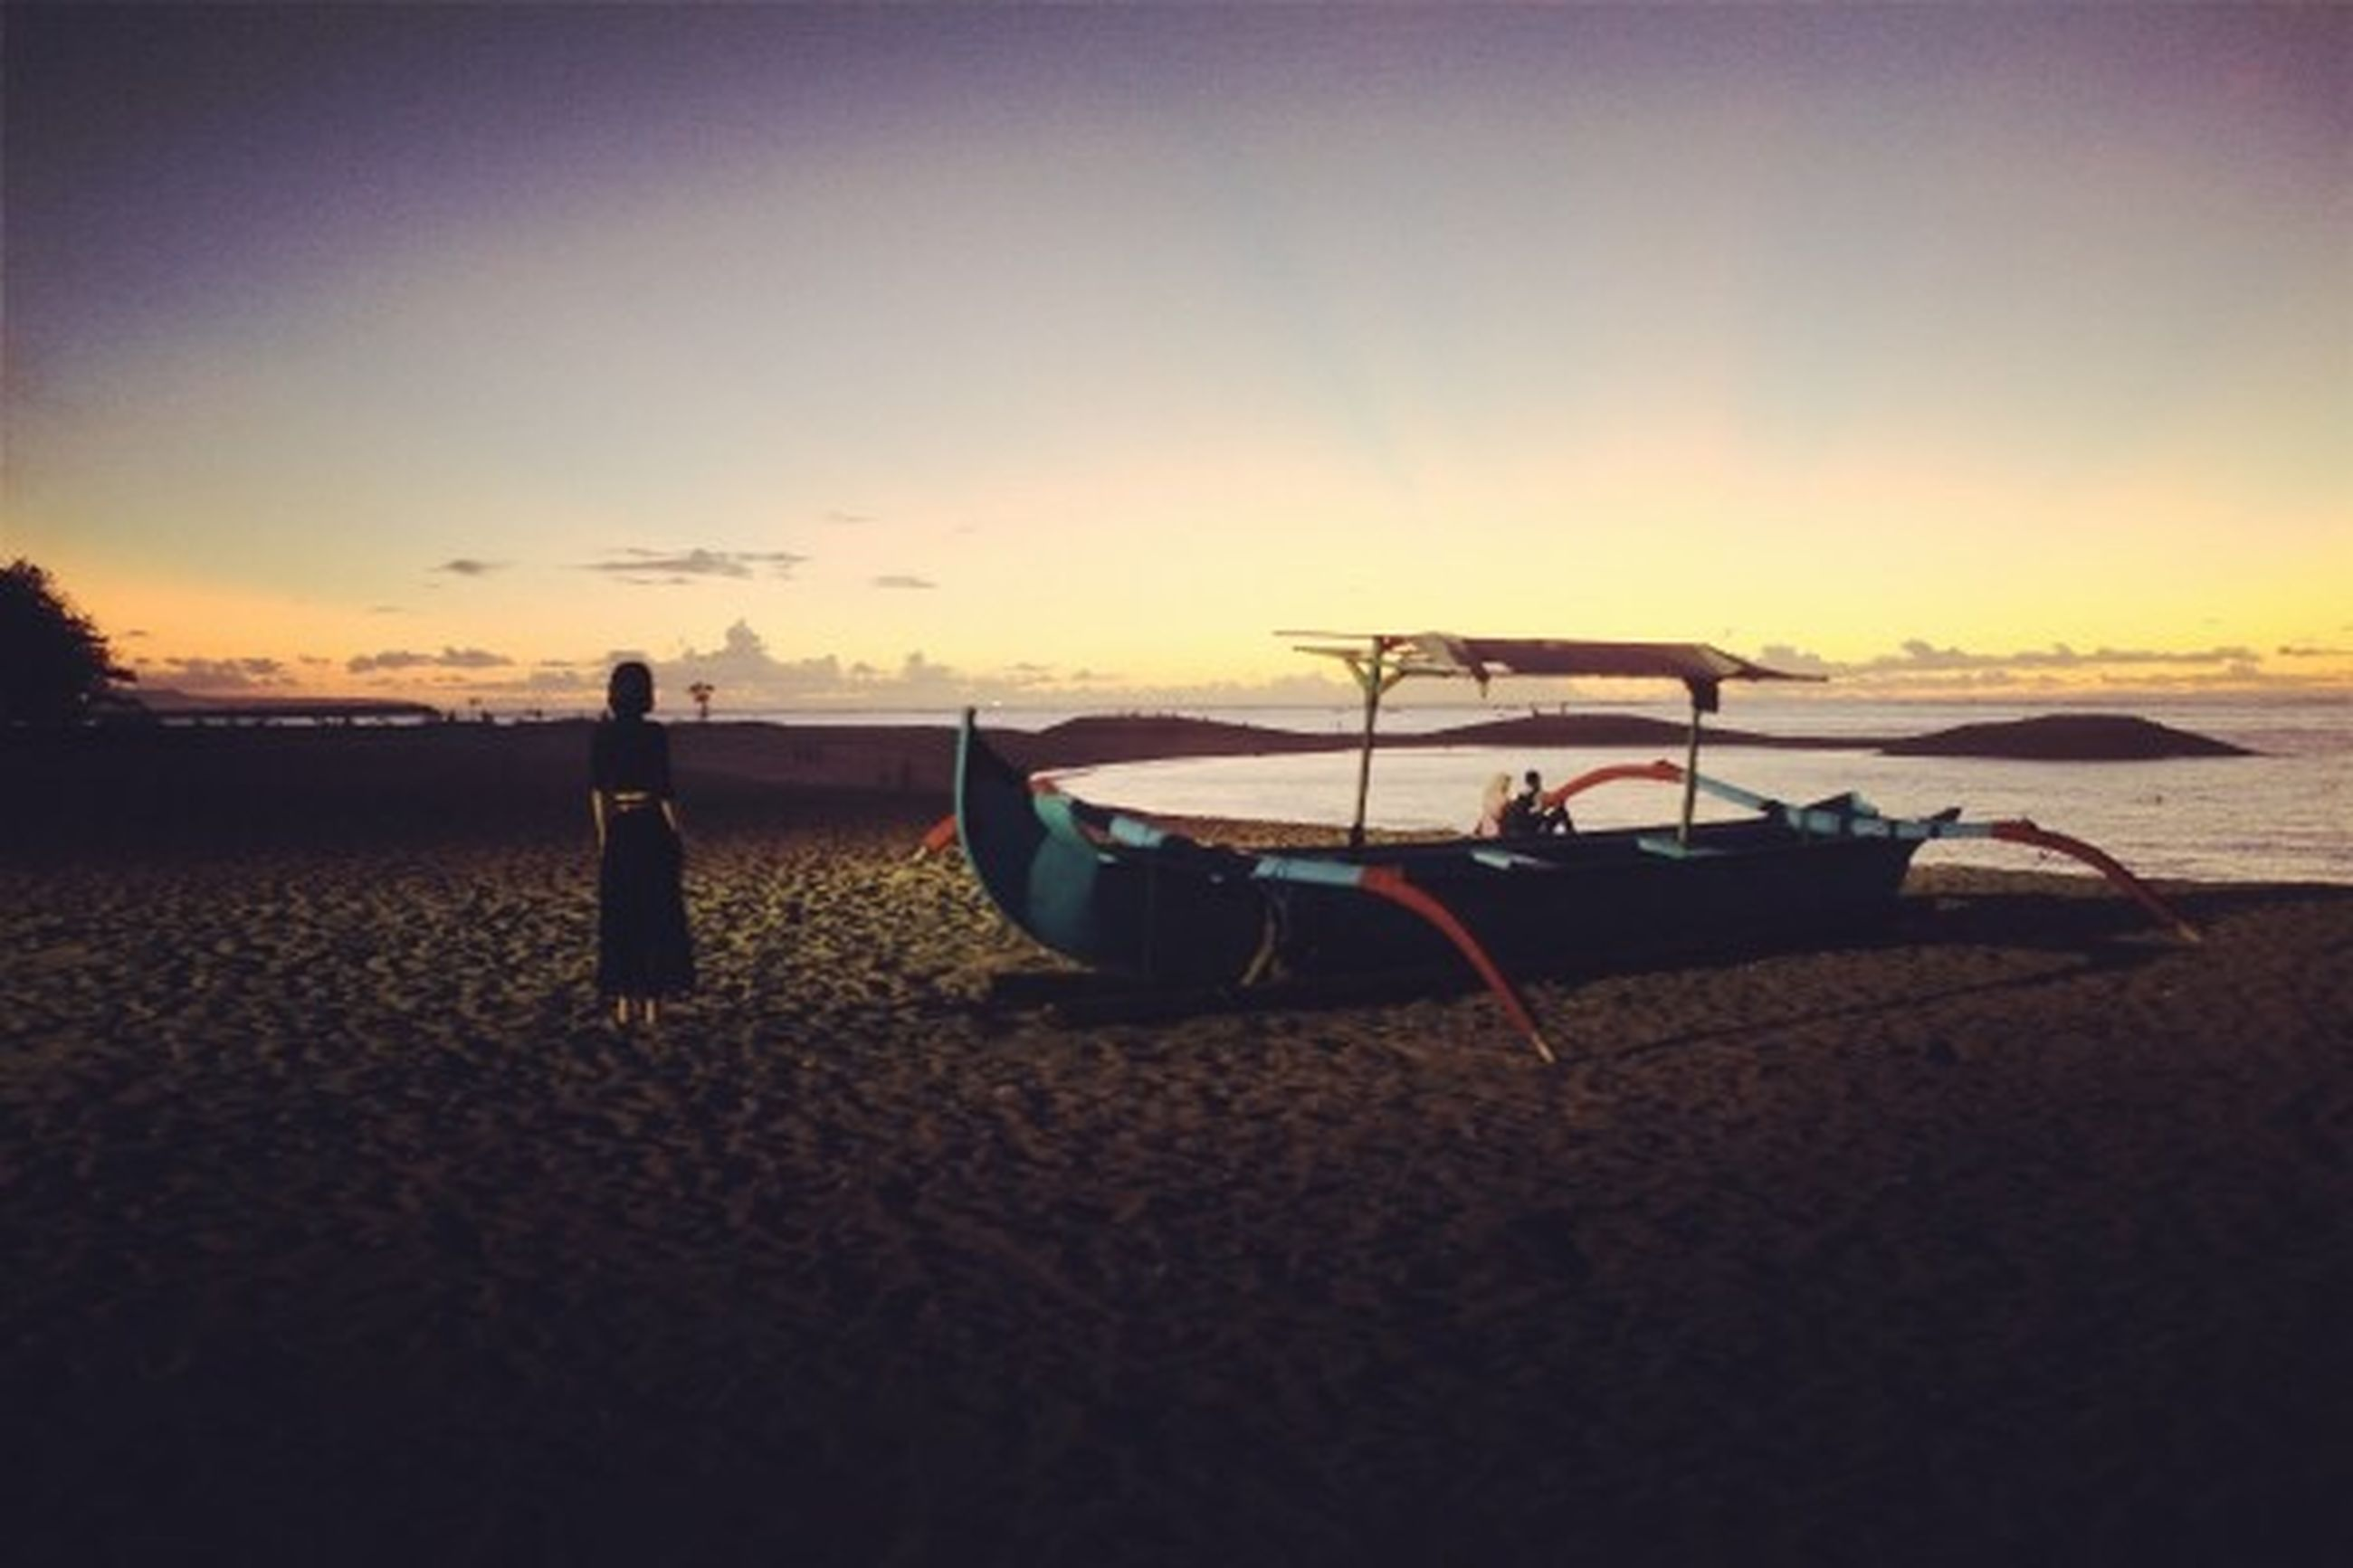 sunset, beach, sand, sky, transportation, copy space, shore, orange color, tranquility, sea, tranquil scene, mode of transport, scenics, beauty in nature, nature, clear sky, silhouette, horizon over water, outdoors, dusk